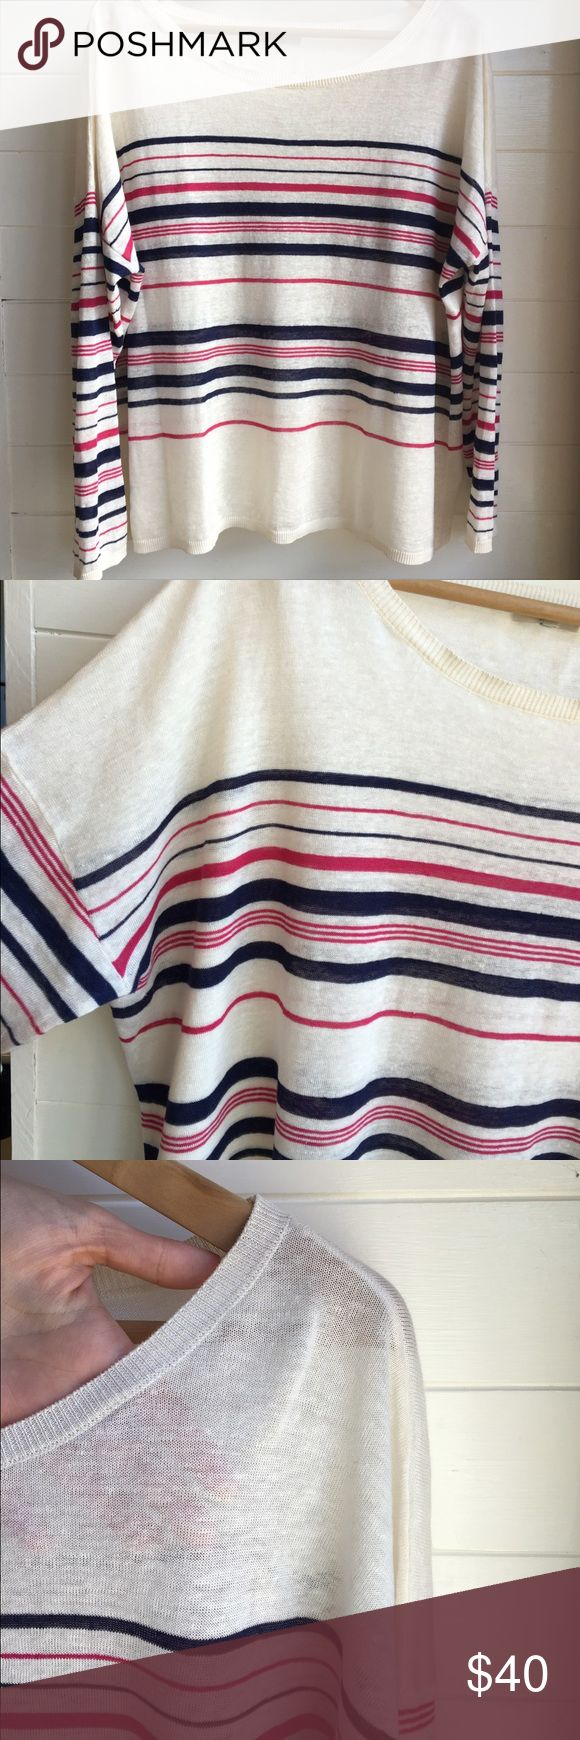 Josie Boxy Sweater Bright white with thin pink and navy blue stripes. Box fit with long sleeves. Slightly sheer. In excellent condition. From Nordstrom. Tag has been cut off. Would fit medium or large.                                                                         ✖️Please no lowball offers or trades  ➕ Bundle for 15% off  ✔️Check out my co-closets, bundle between all three- one bundle, one shipping fee!! Joie Sweaters Crew & Scoop Necks